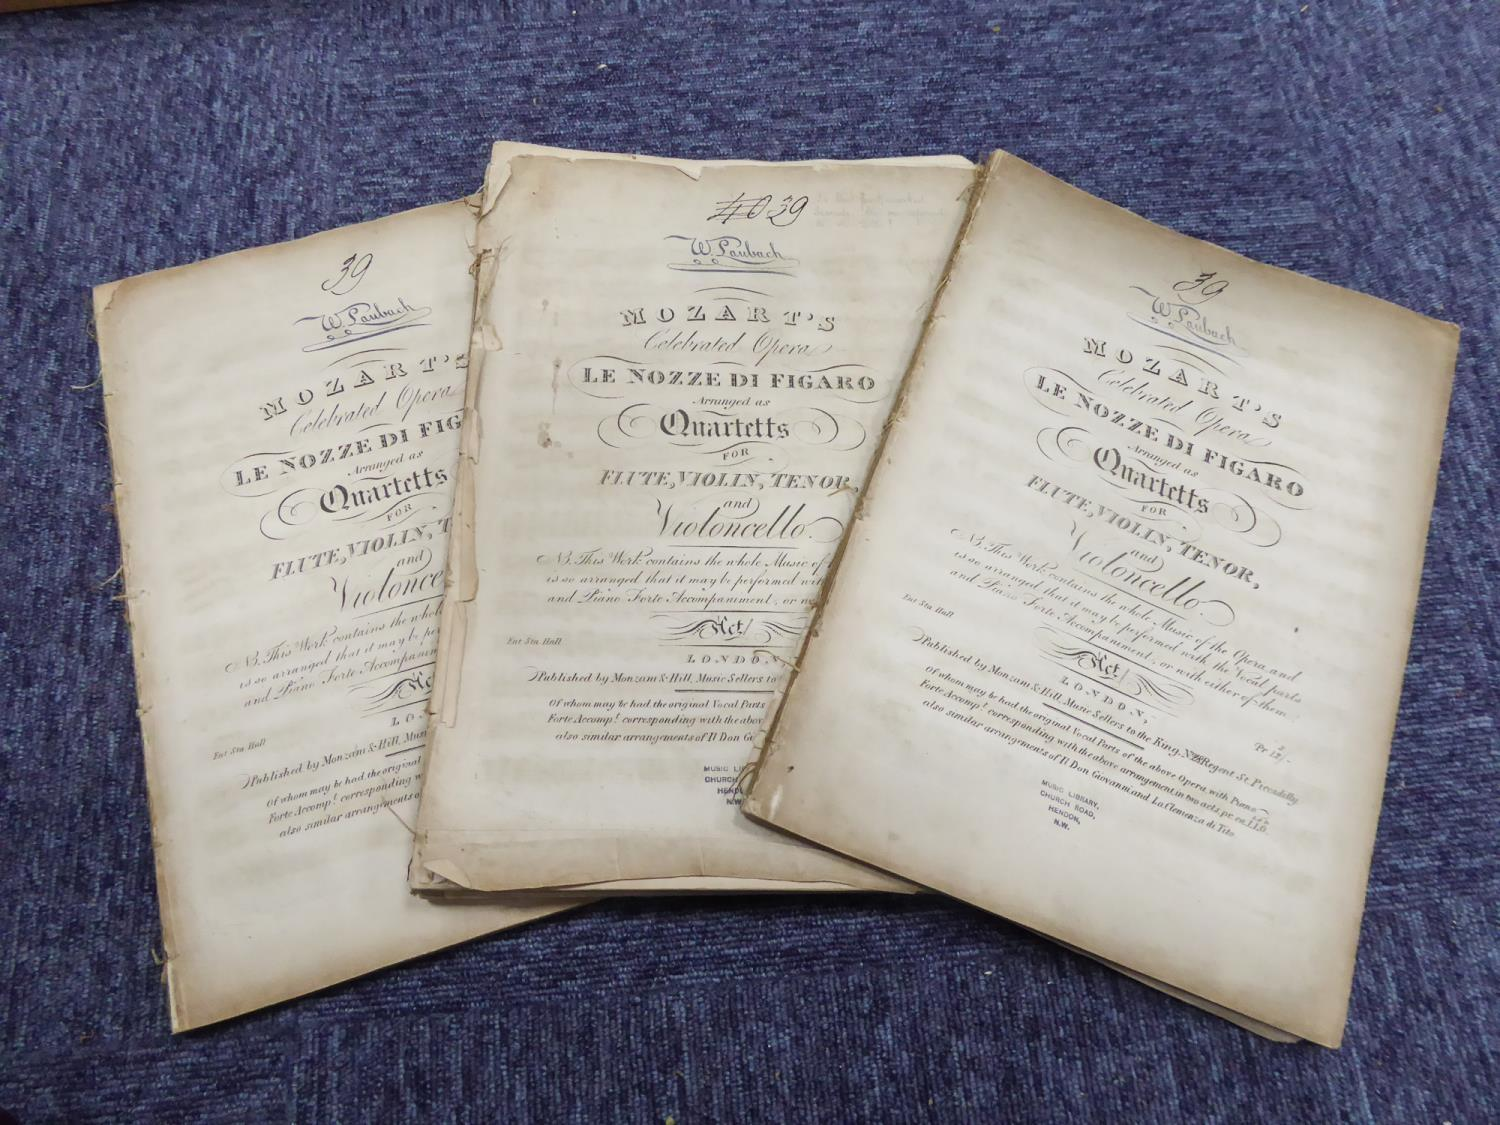 Lot 130 - MOZART SHEET MUSIC Le Nozze Di Figaro Act 1 and Don Giovanni Act 2 publisher Mozani and Hill music